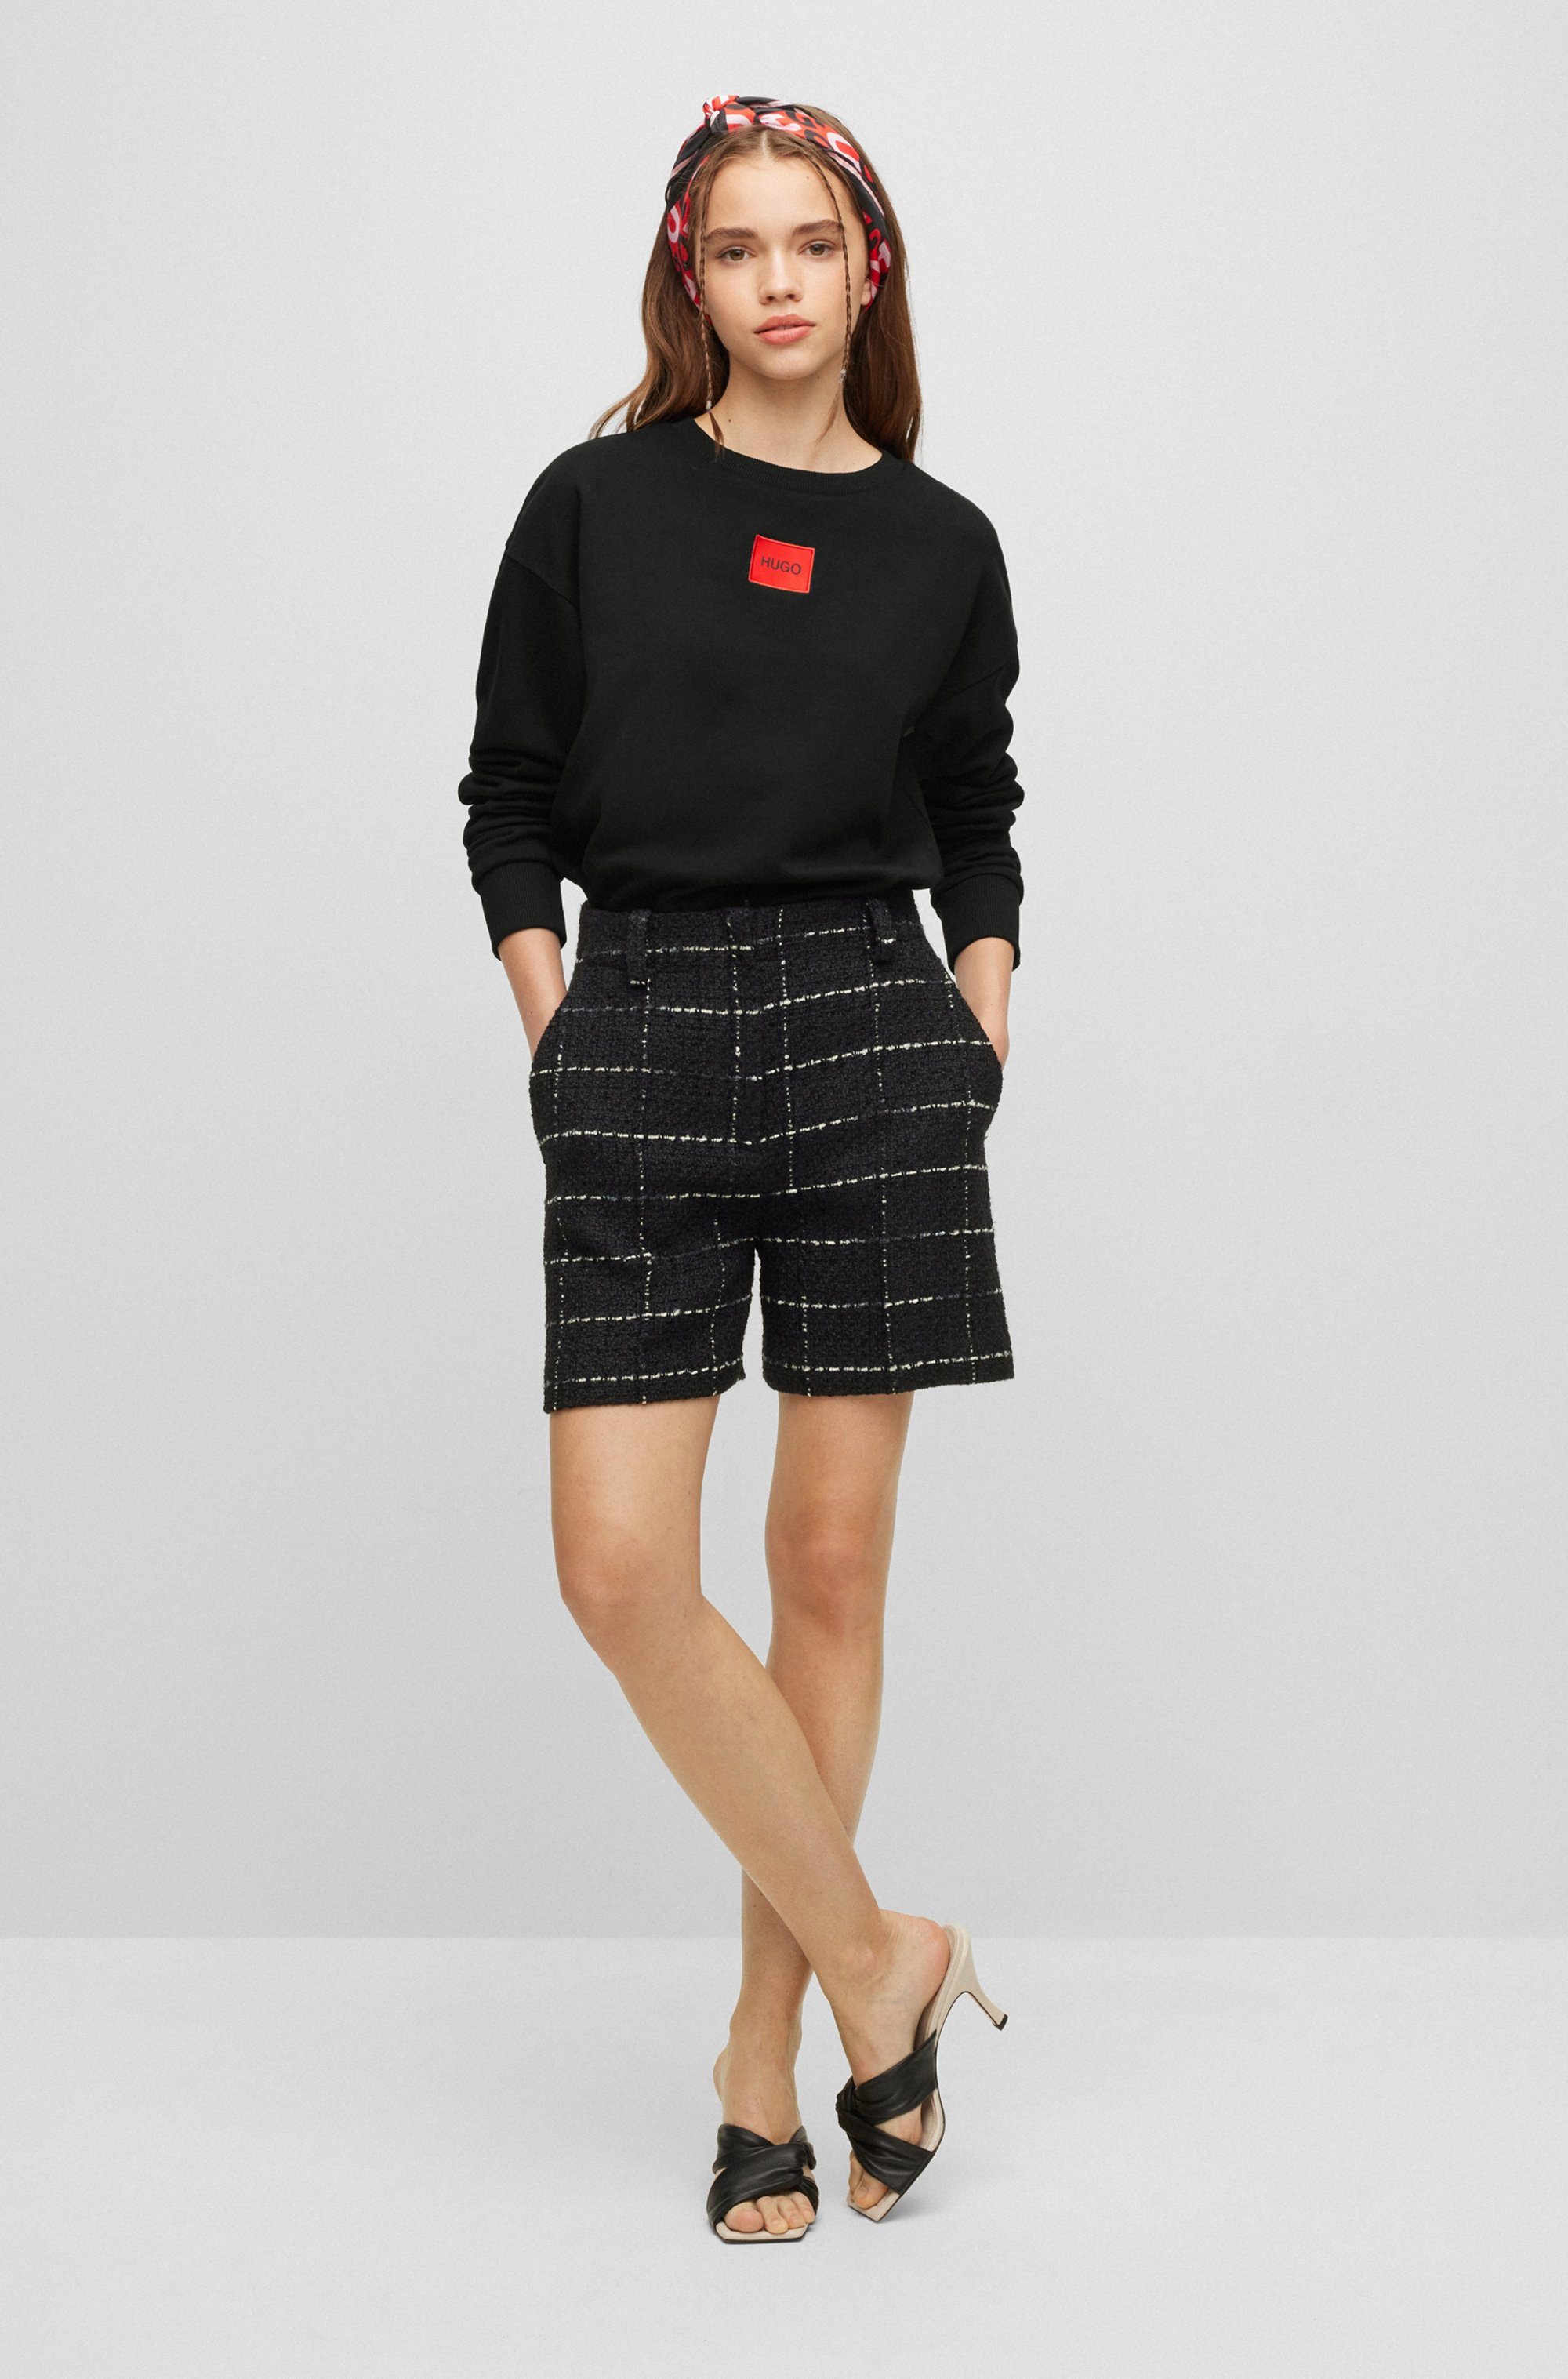 Regular-fit cotton sweatshirt with red logo label